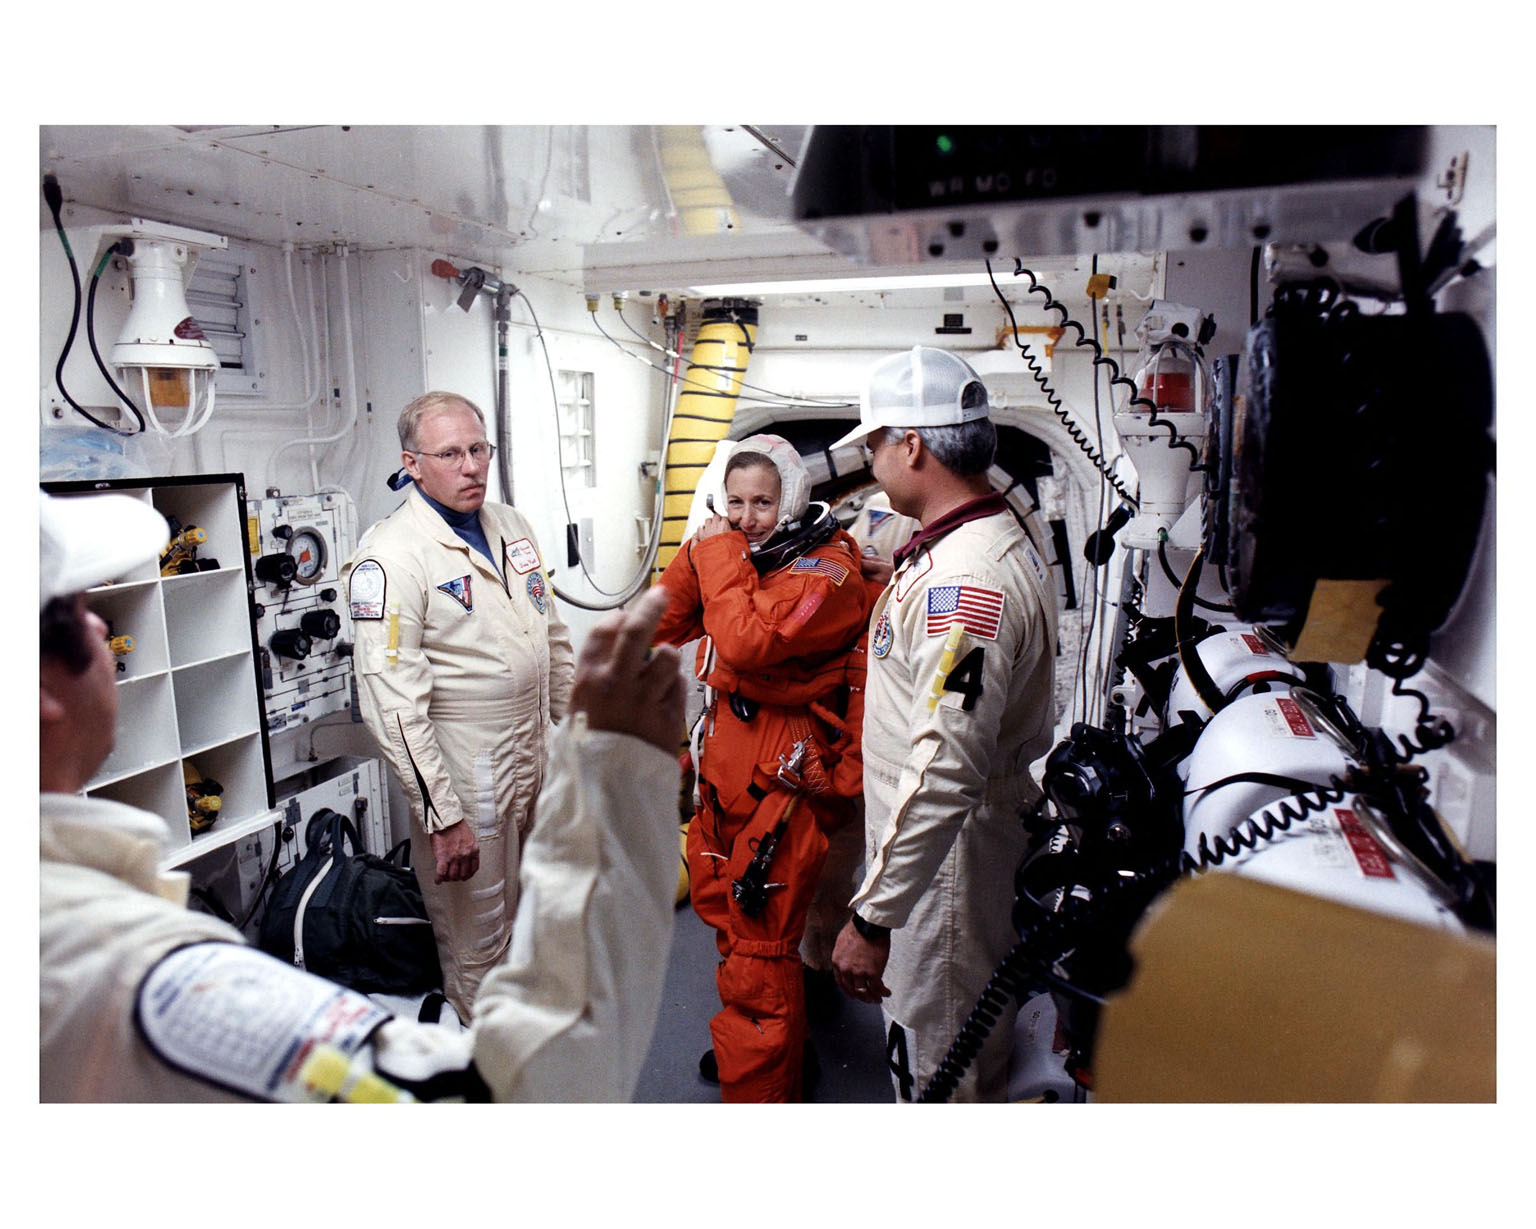 STS-81 crew in the White Room at LC 39